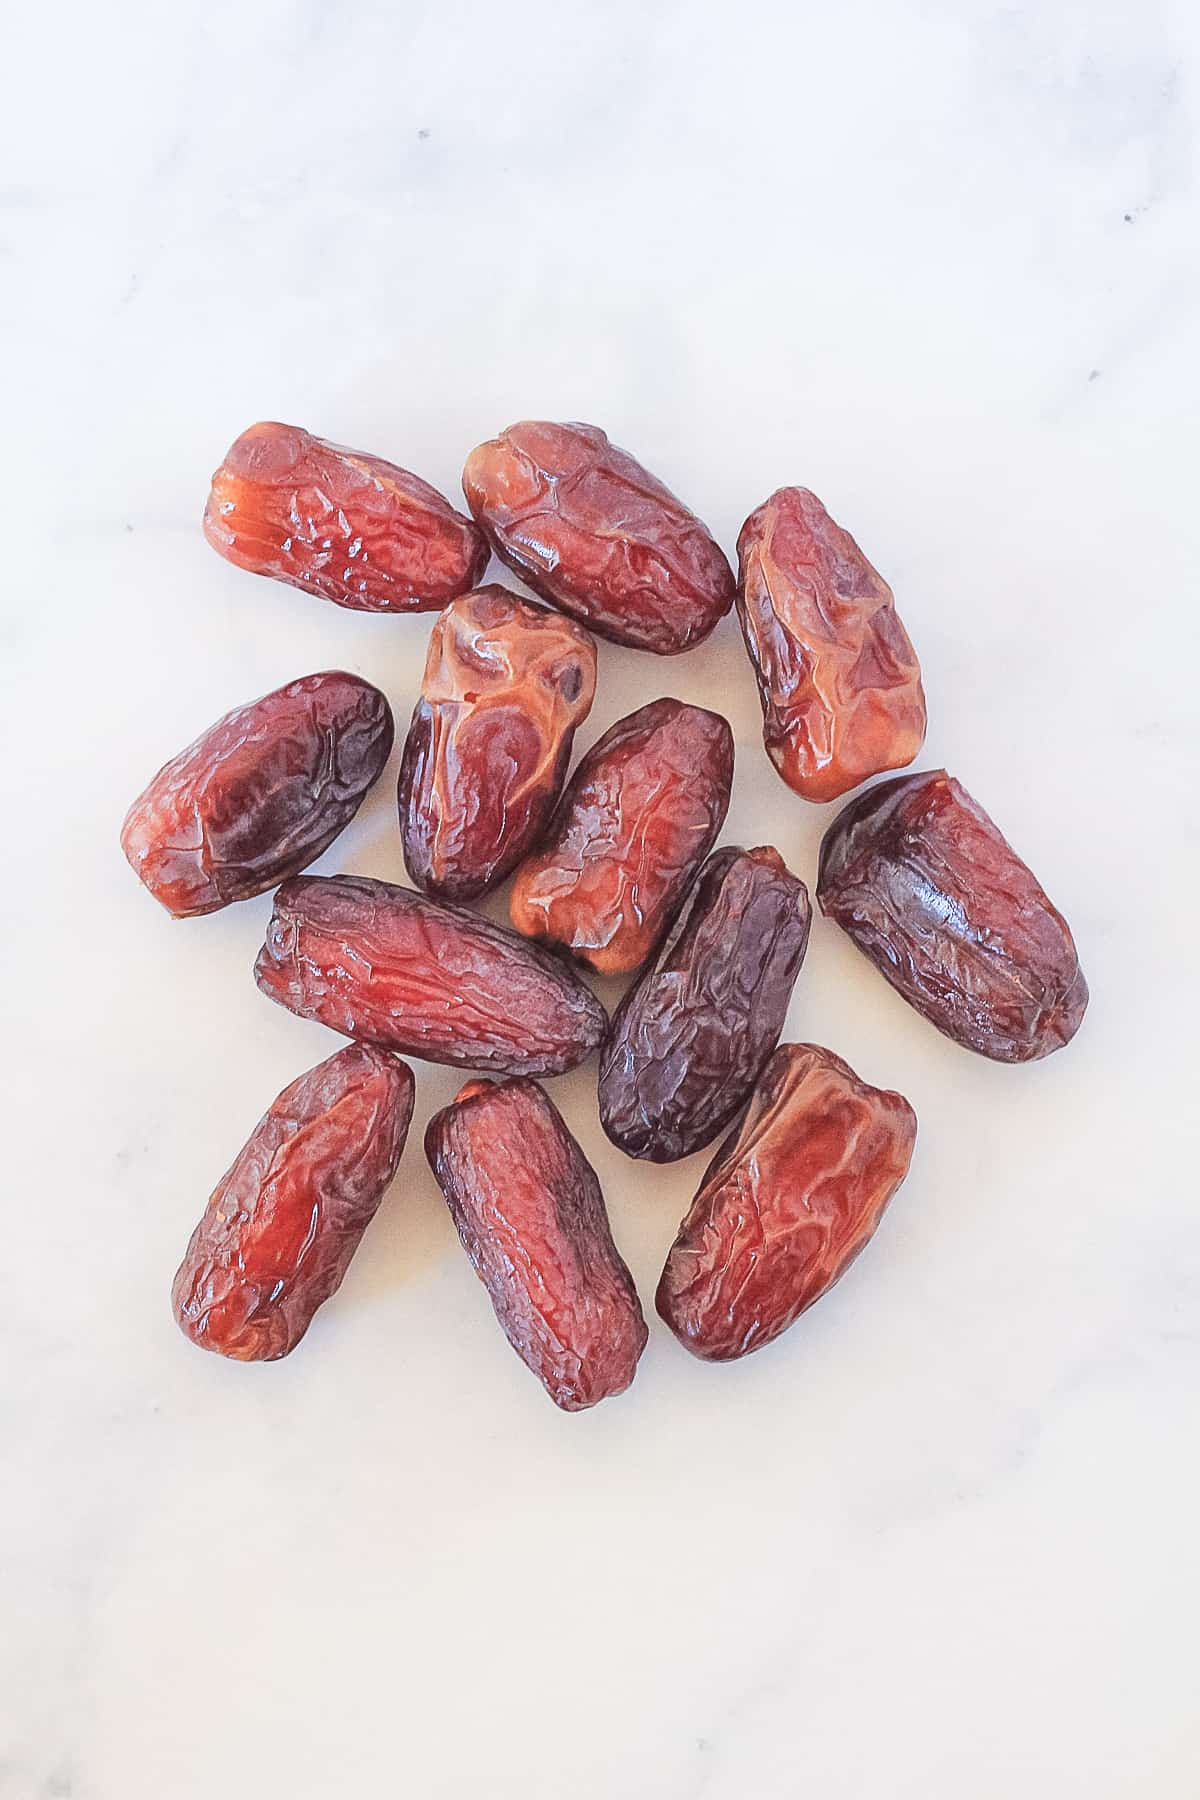 Pile of medjool dates on a marble background.